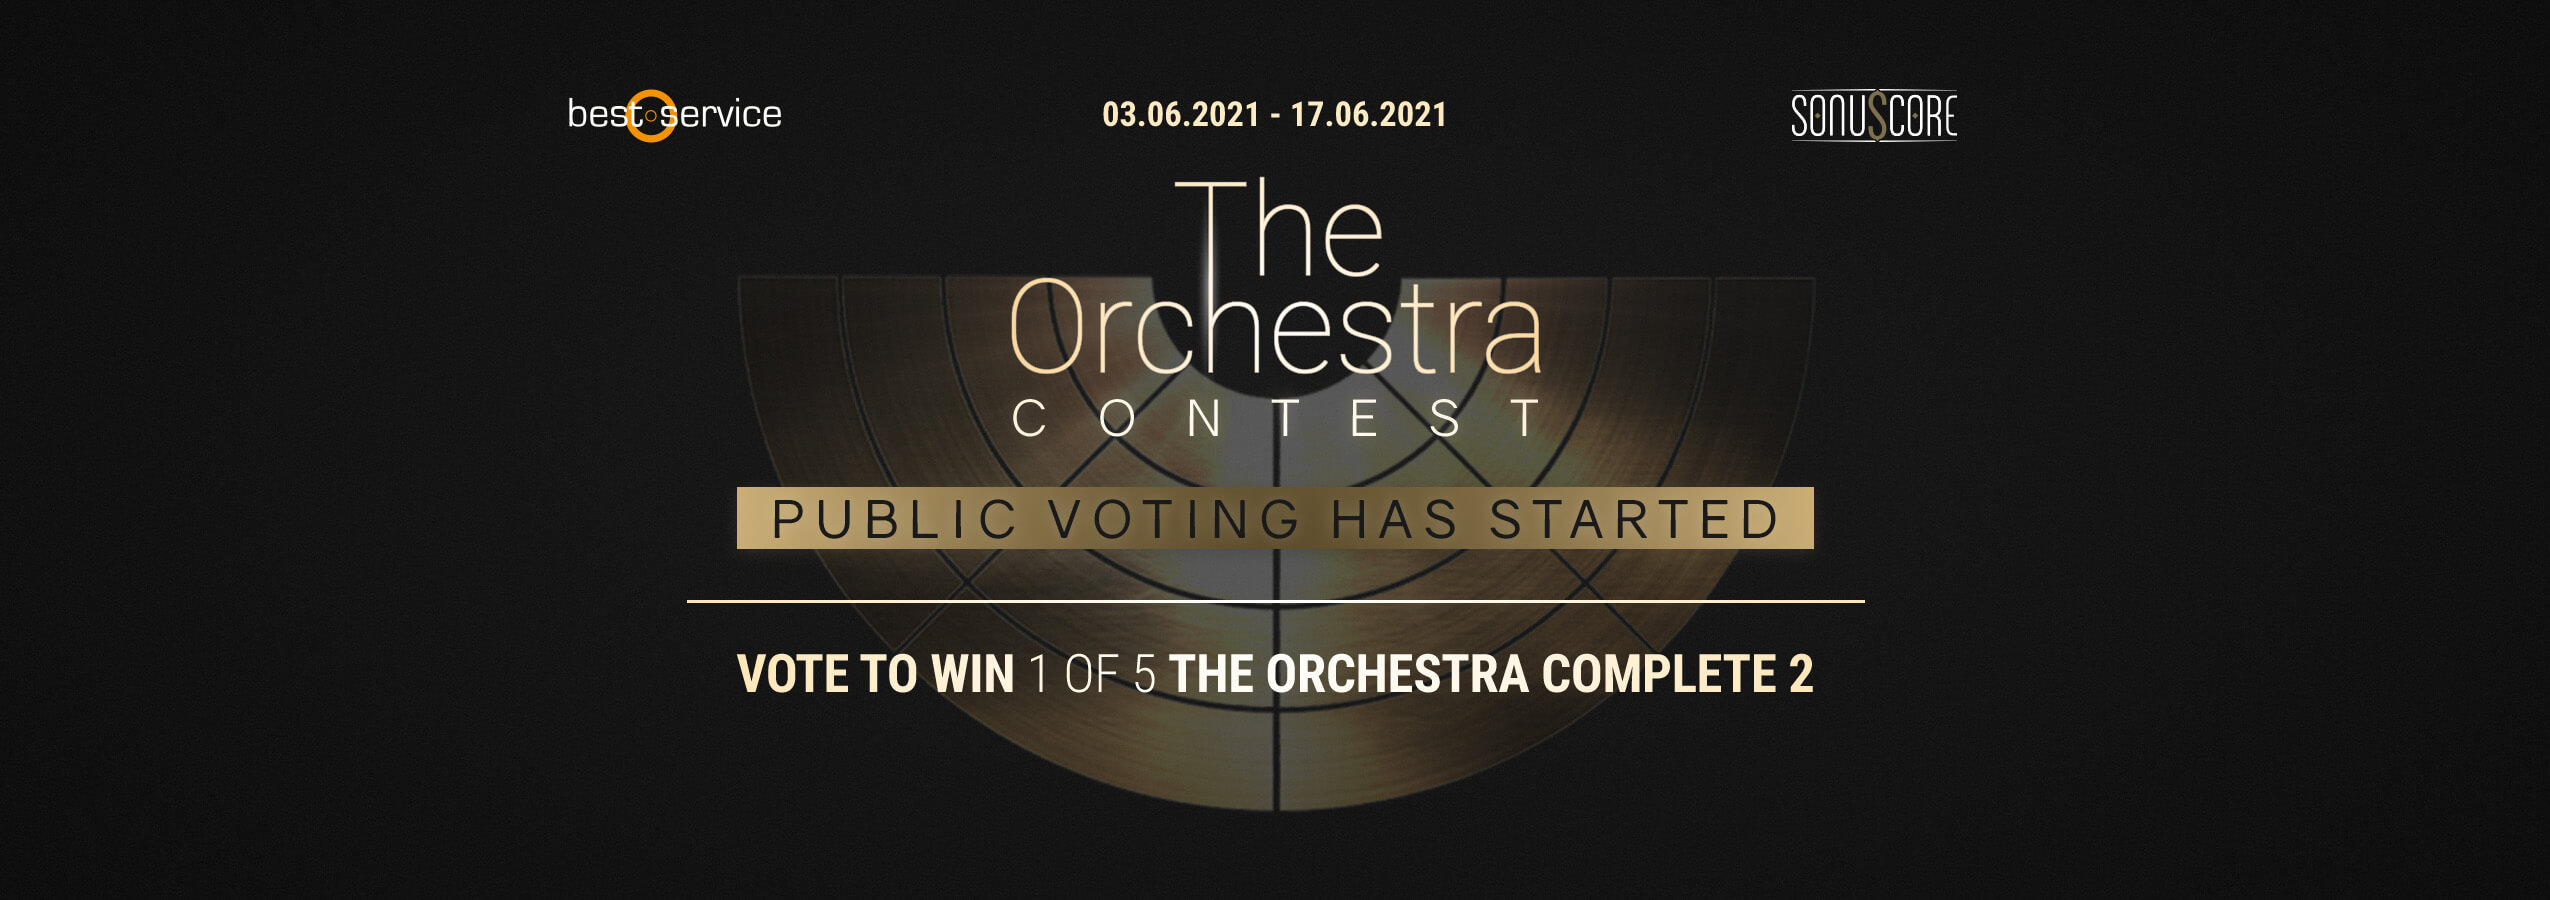 The Orchestra Contest Header - Voting Phase